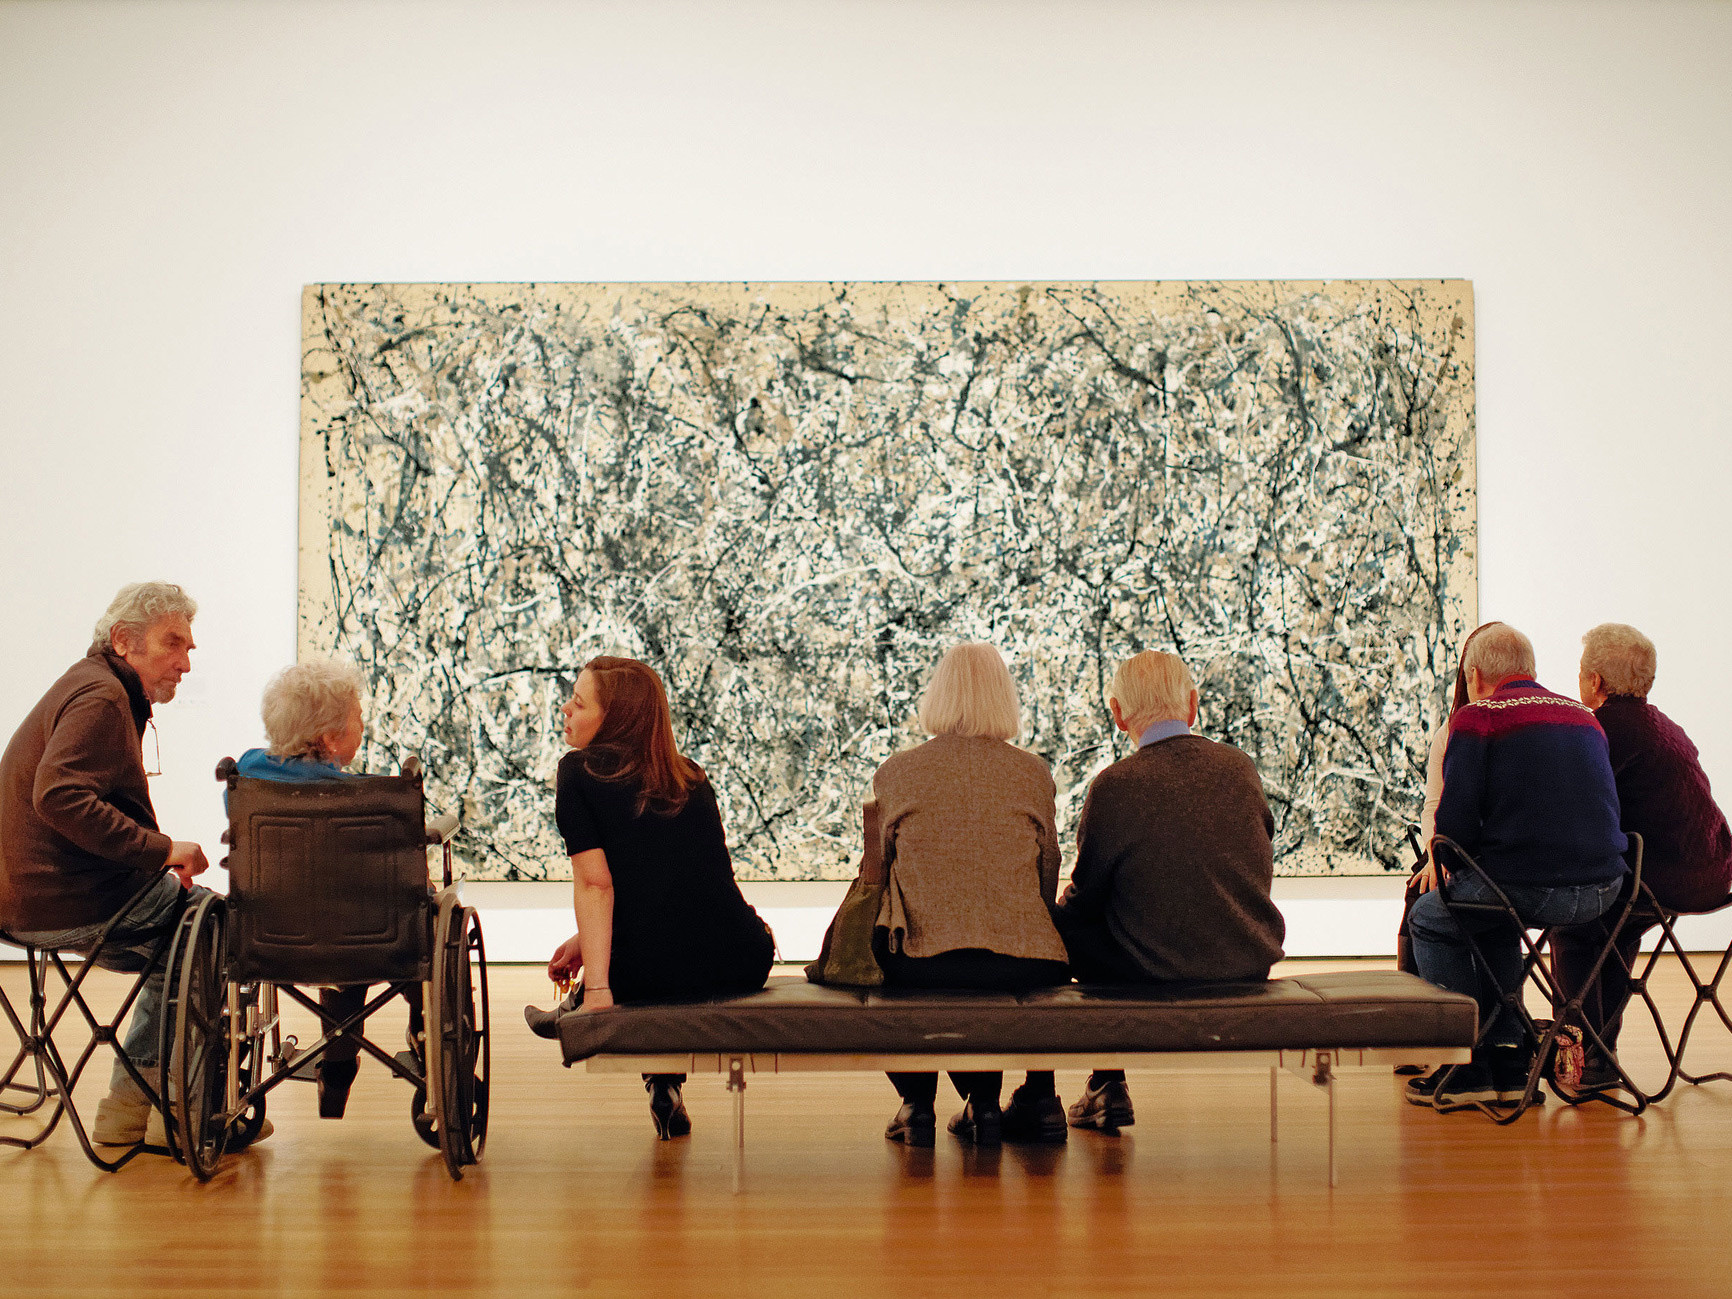 Meet Me at MoMA. February 3, 2009. On wall: Jackson Pollock. One: Number 31, 1950. 1950. Oil and enamel paint on canvas. Sidney and Harriet Janis Collection Fund (by exchange). Conservation was made possible by the Bank of America Art Conservation Project. © 2018 Pollock-Krasner Foundation / Artists Rights Society (ARS), New York. Photo: Jason Brownrigg